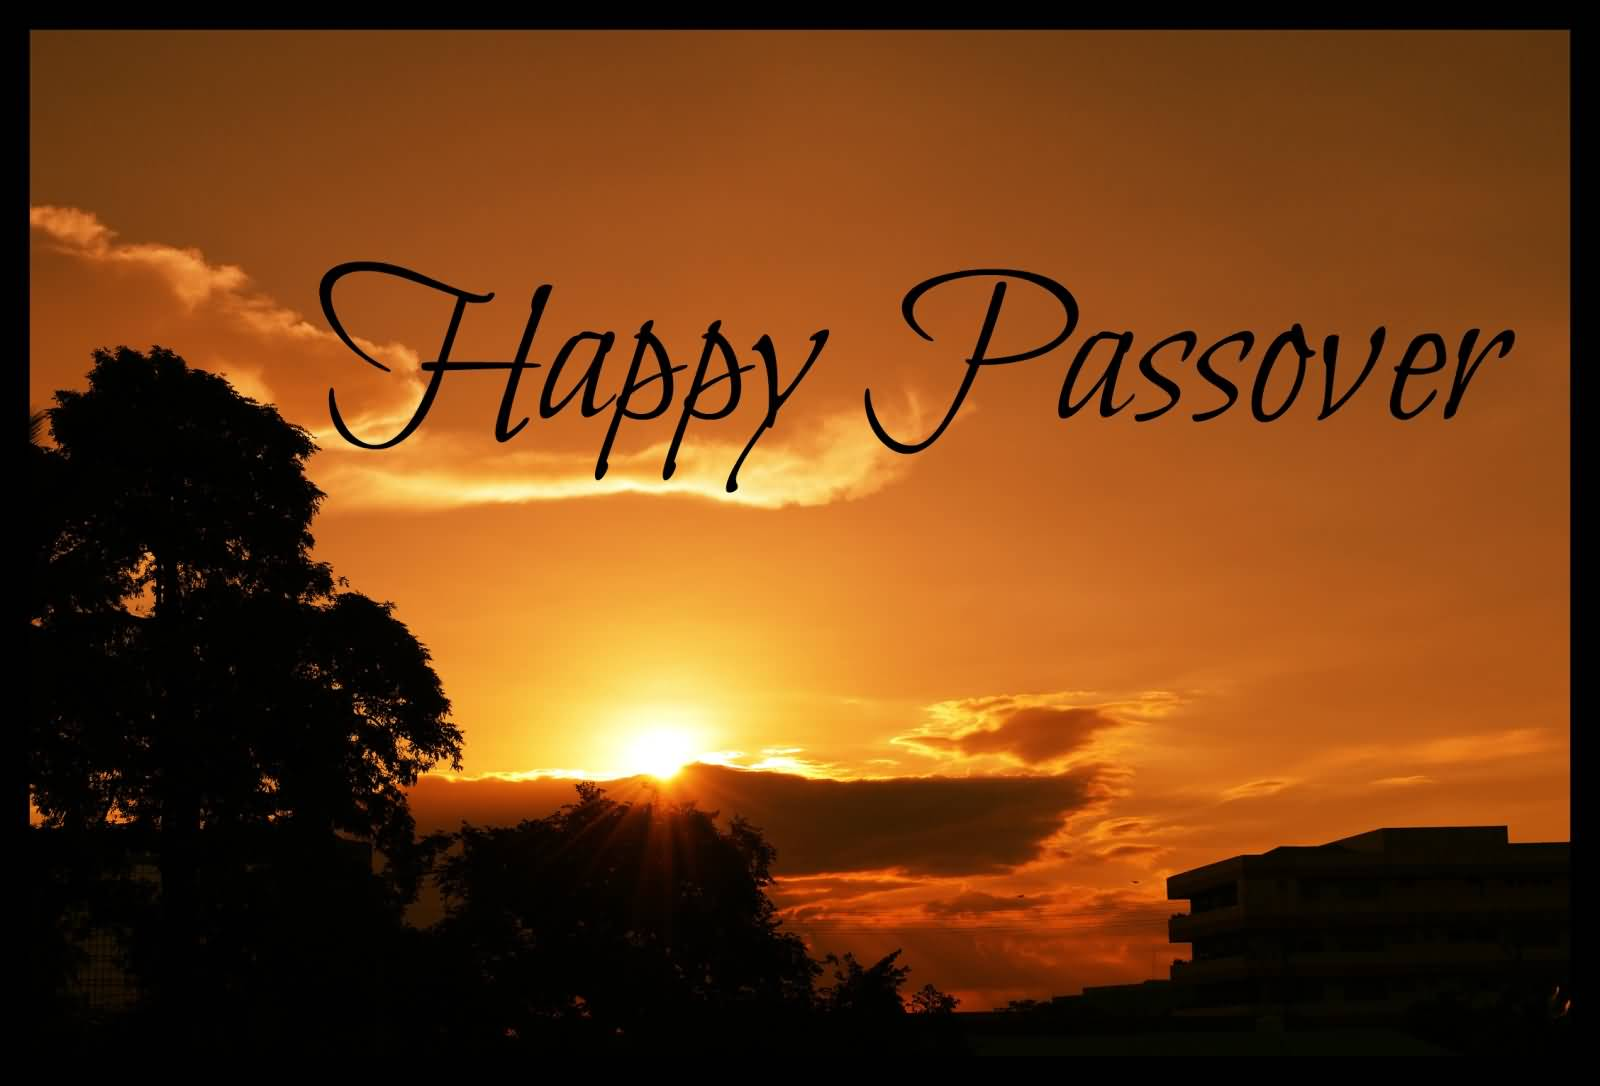 Happy Passover 2019: Inspirational Quotes, Messages To Share With Family & Friends